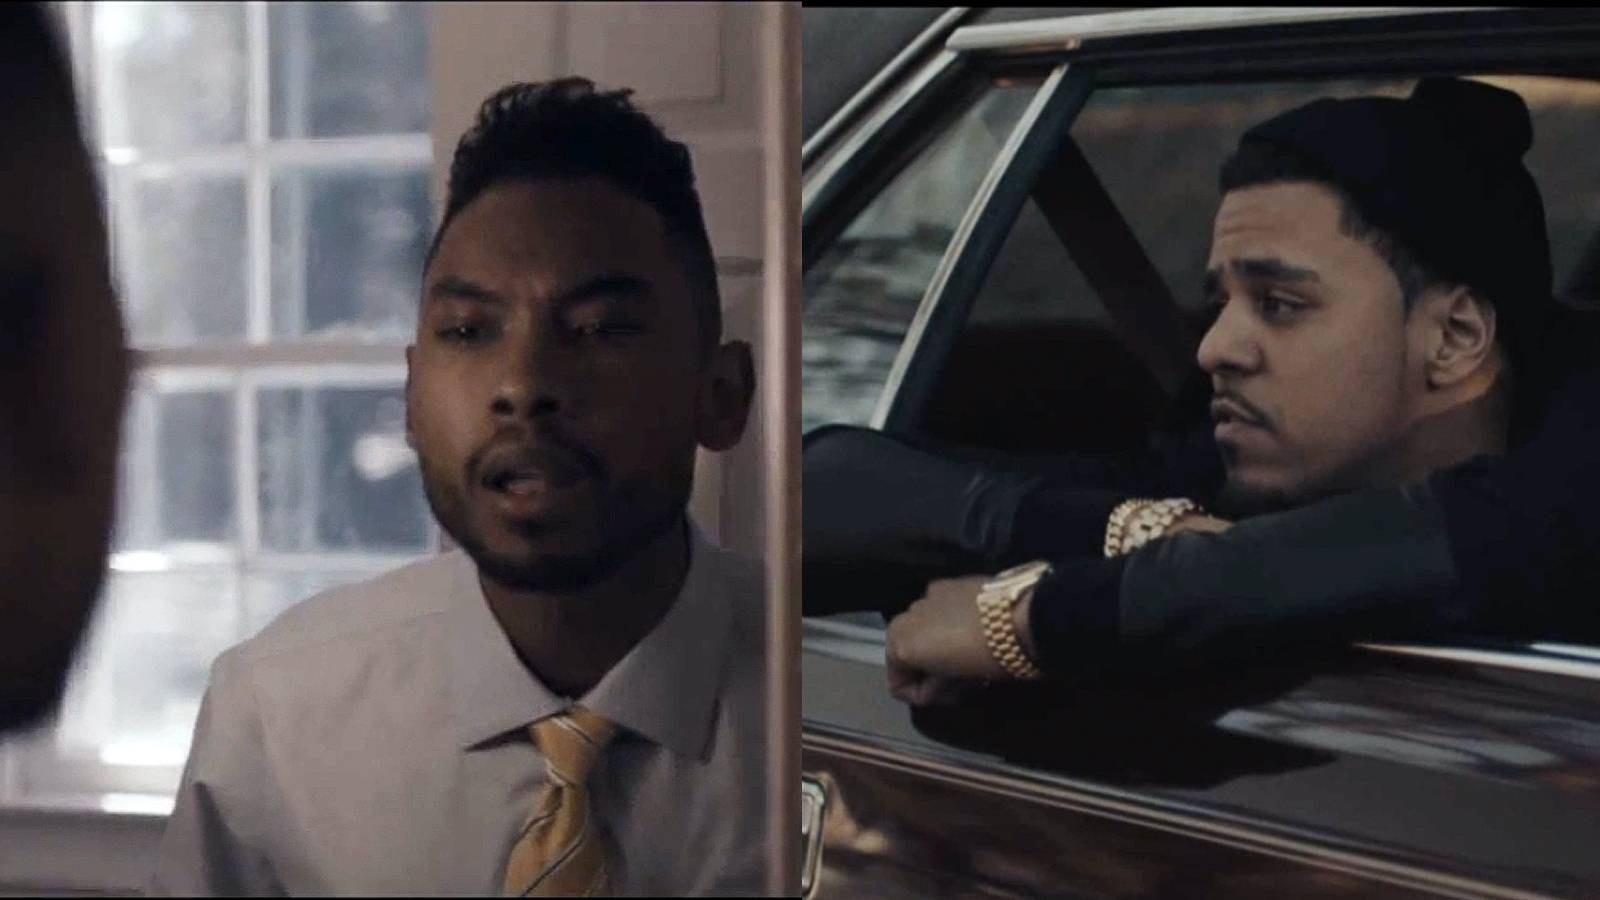 """Best Collaboration: J. Cole feat. Miguel - """"Power Trip"""" - The Roc Nation rapper and the R&B singer prove themselves a powerful match on this hit single off Cole's sophomore album,Born Sinner.(Photos: Roc Nation)"""